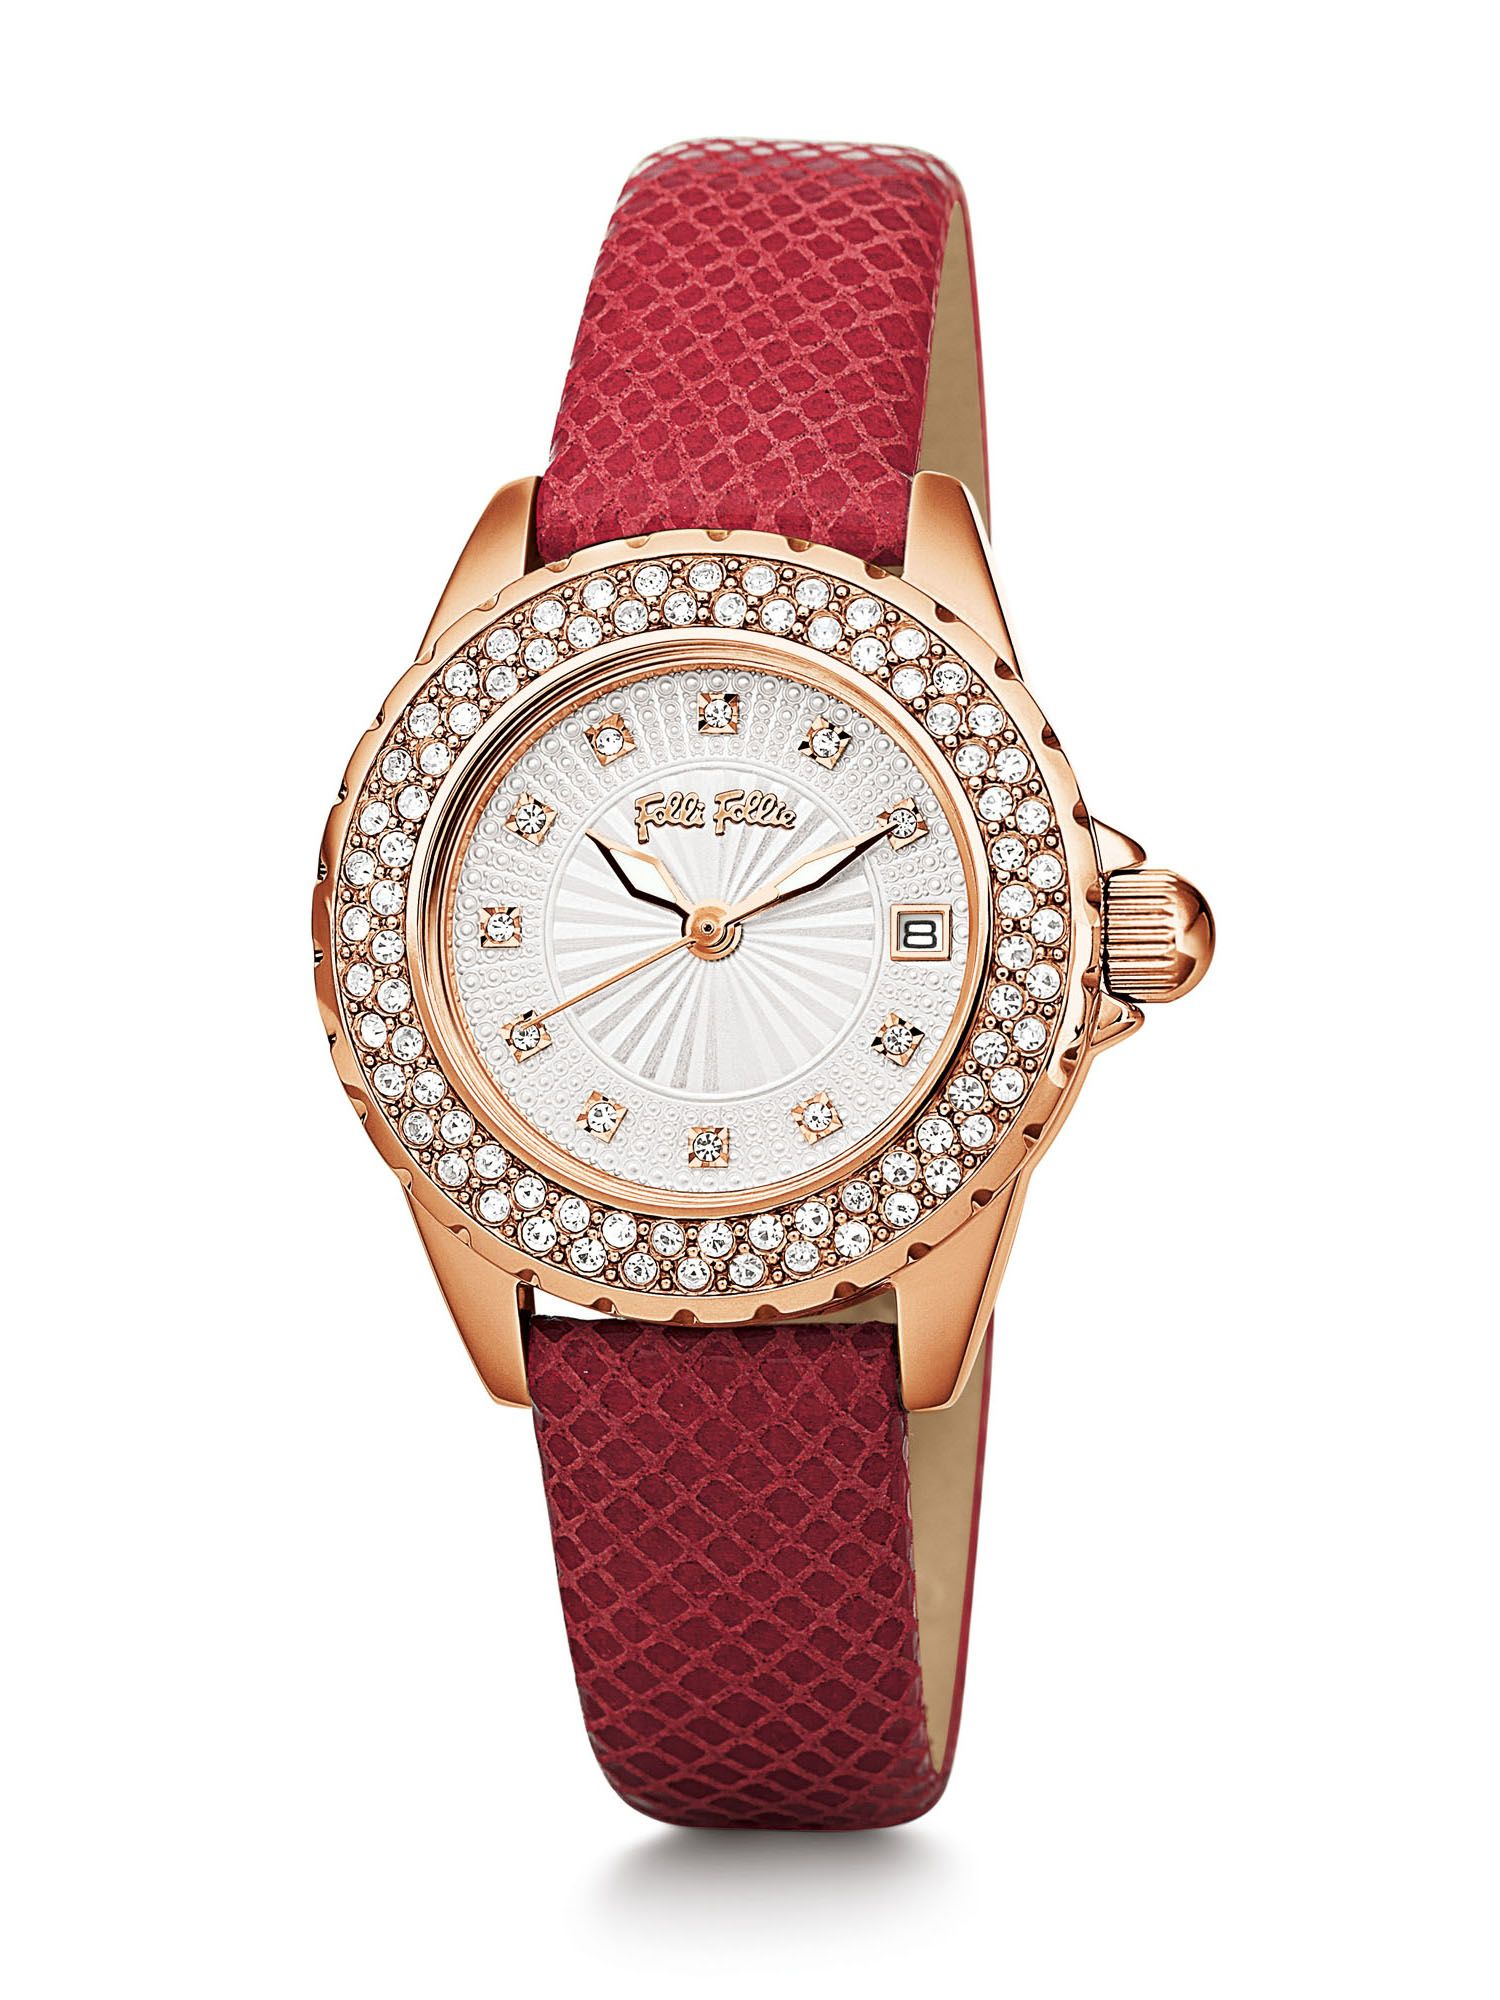 Folli Follie Day Dream Watch with Red Leather Strap, Red